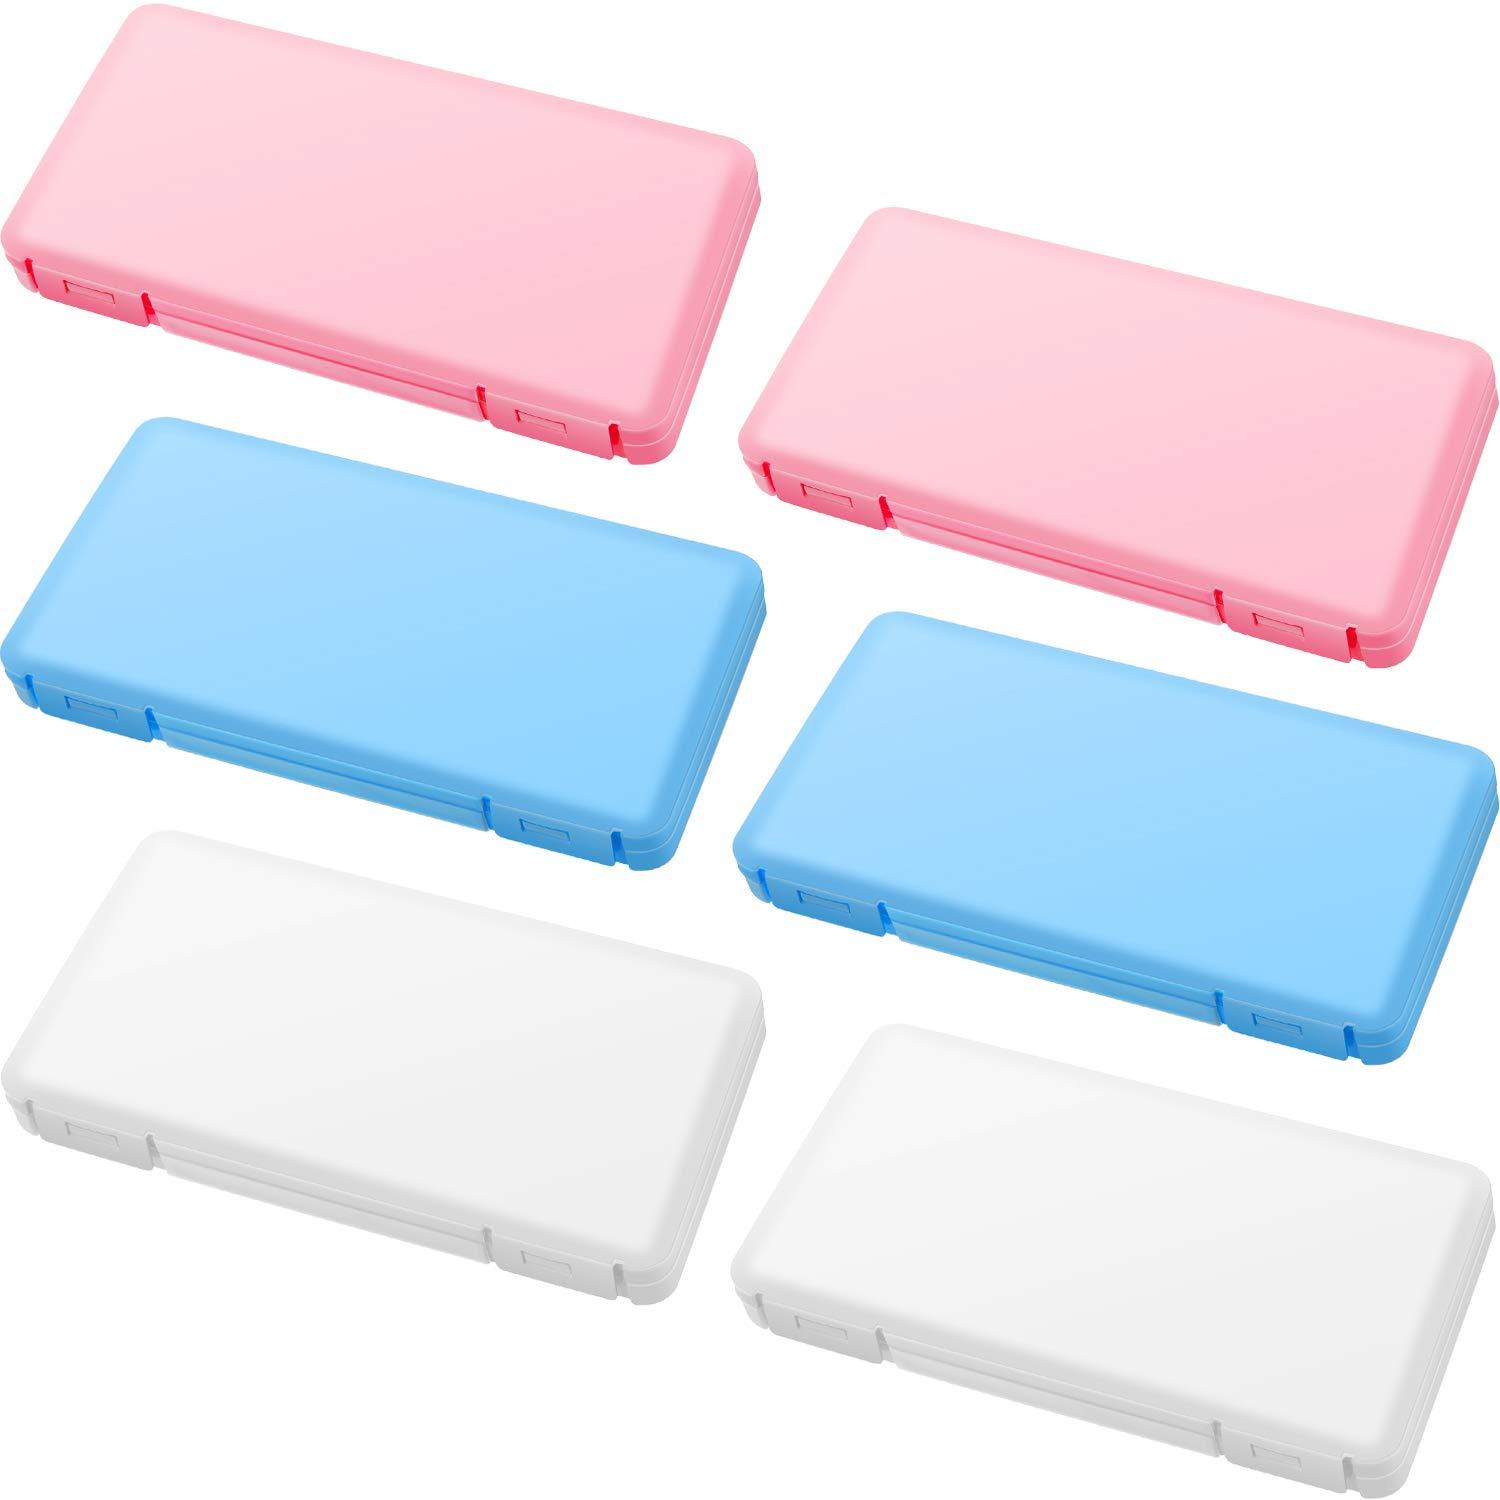 4 Pieces Portable Plastic Storage Boxes with Lids